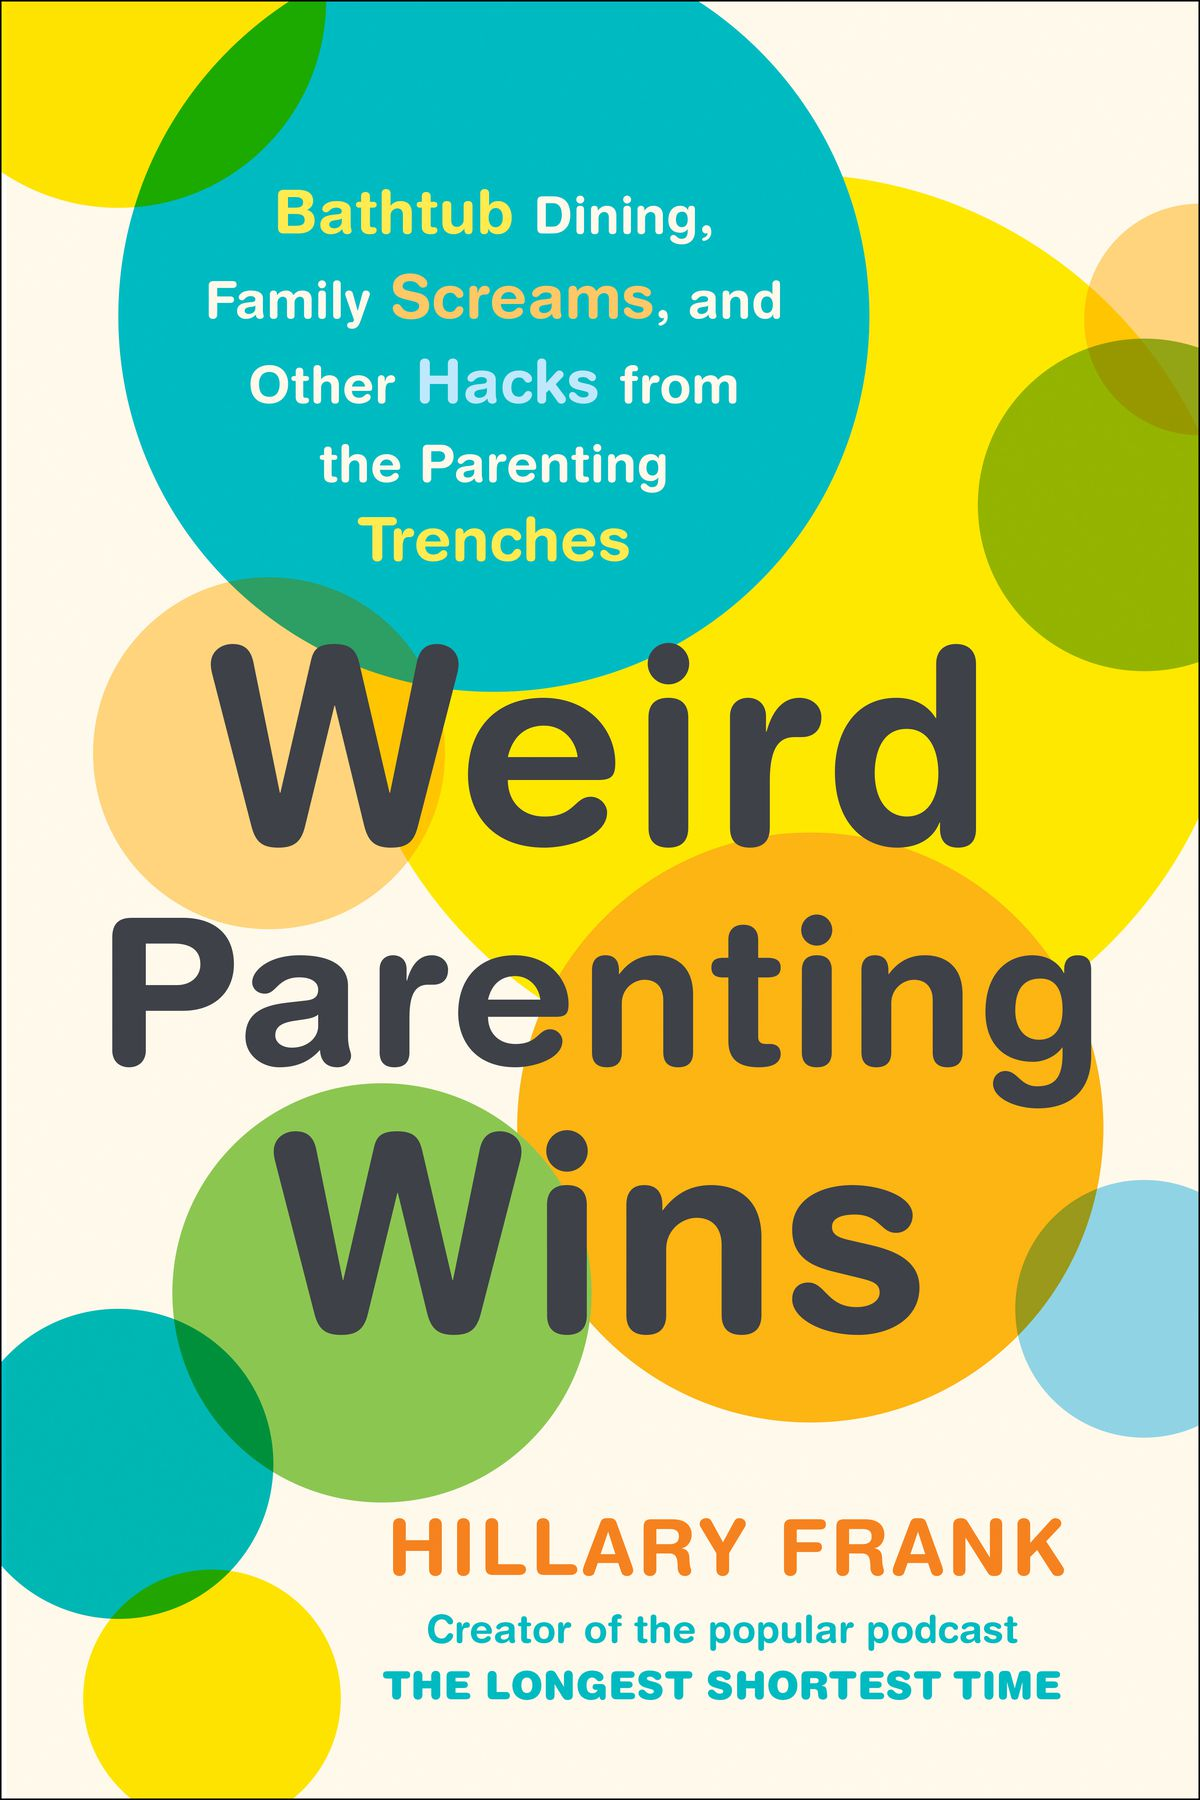 The cover of Weird Parenting Wins, by Hillary Frank